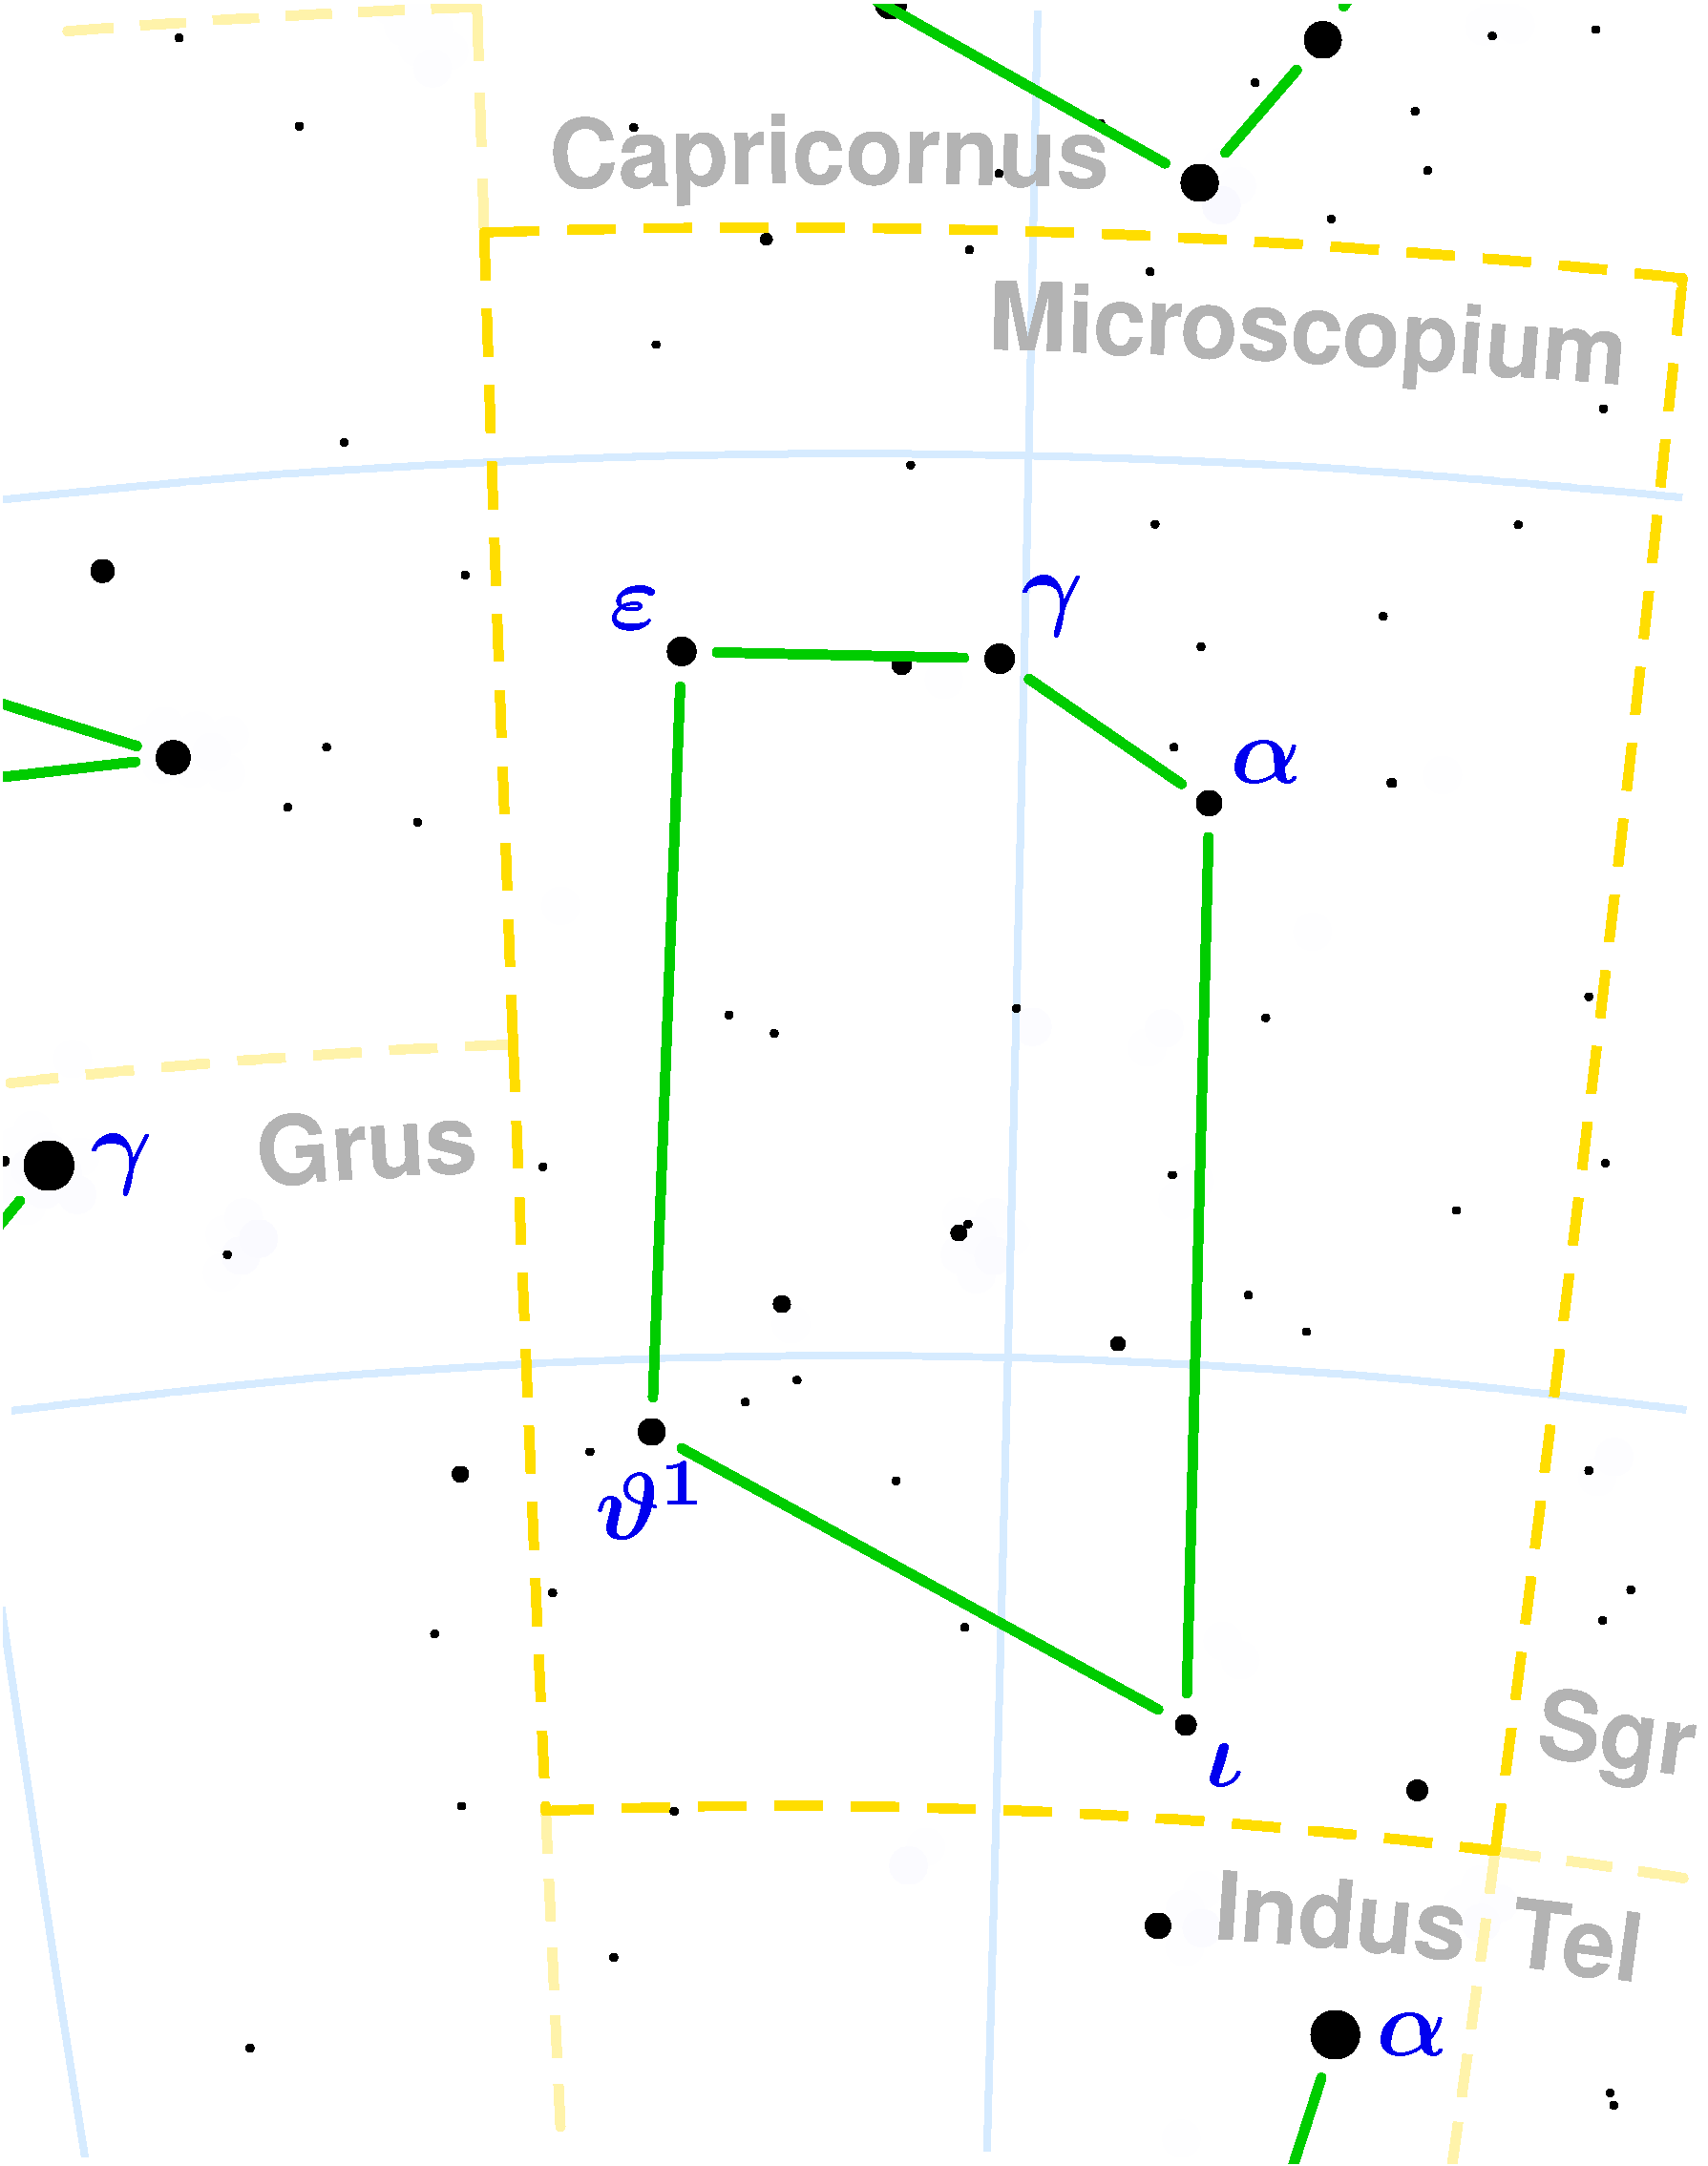 File:Microscopium constellation map.png - Wikimedia Commons